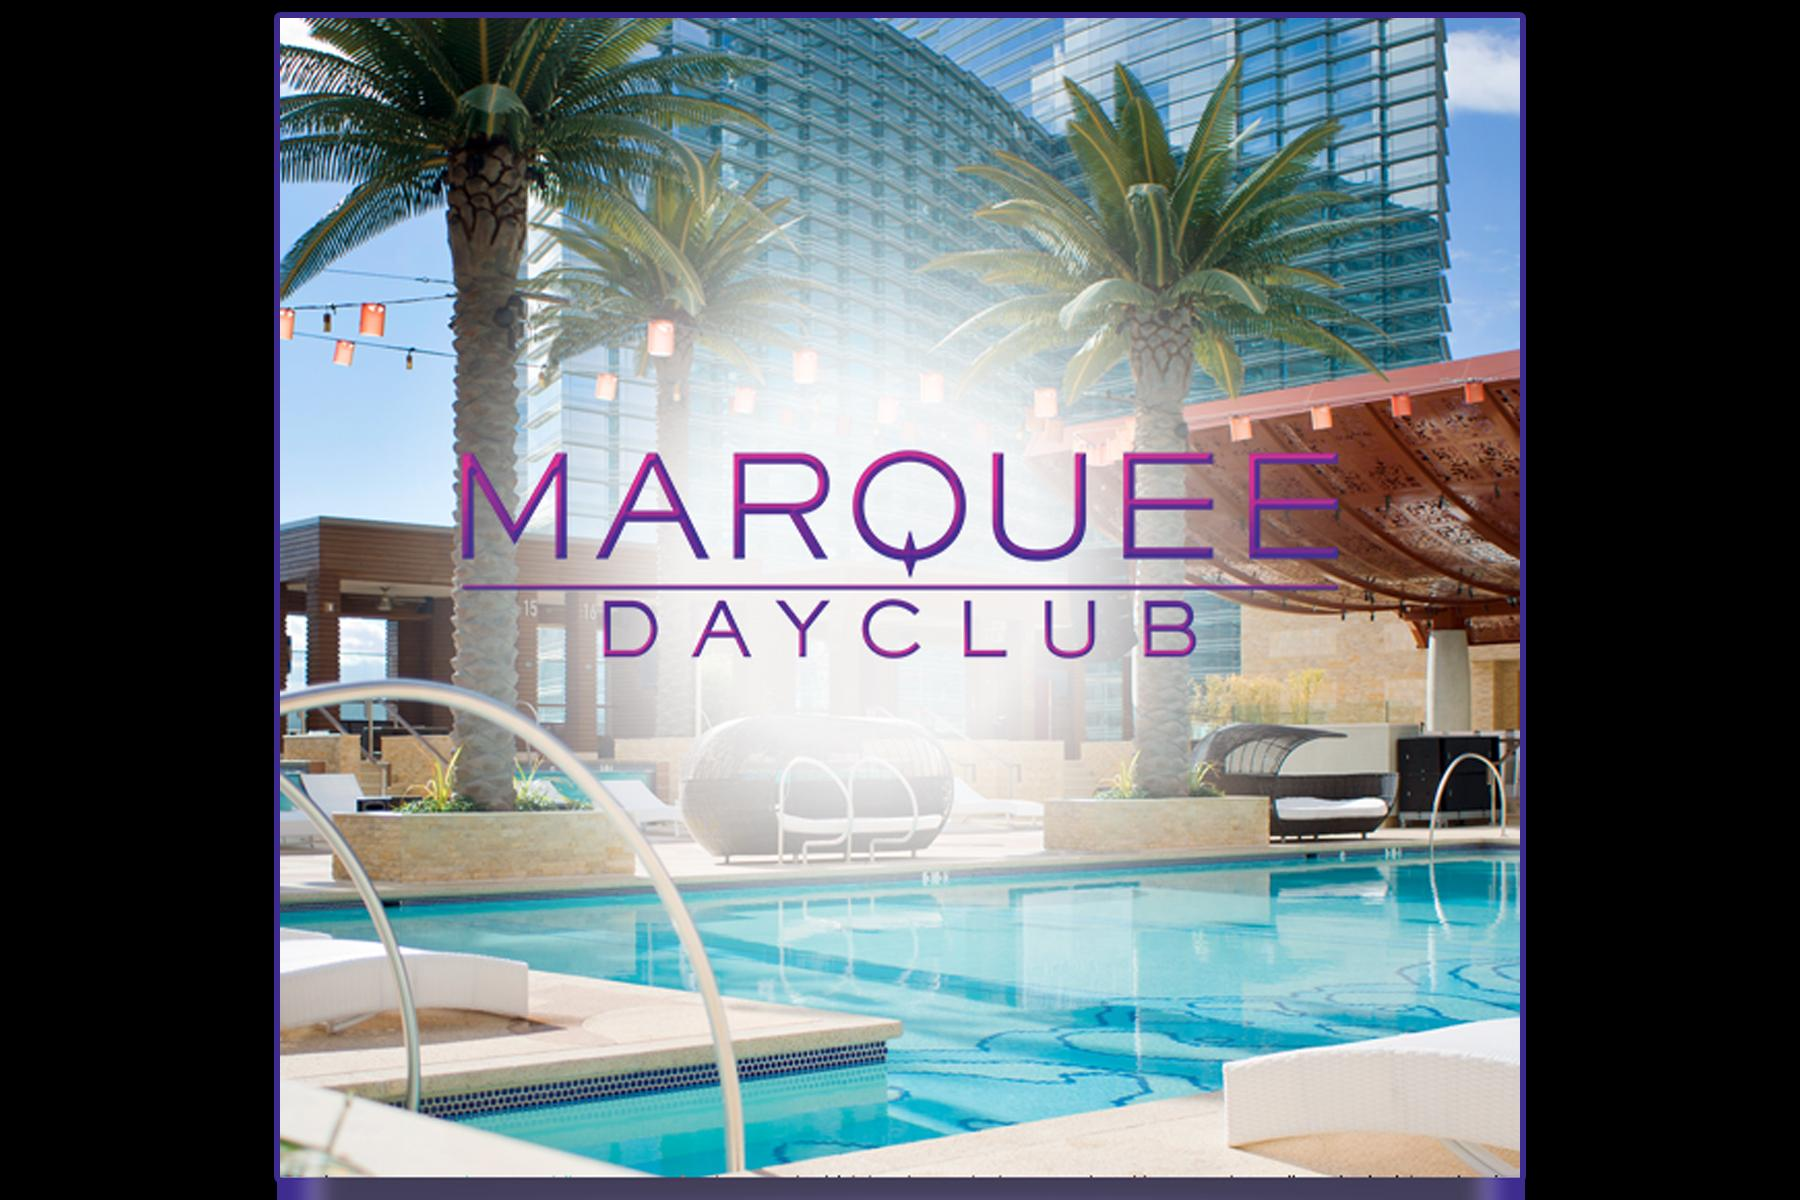 MARQUEE DAYCLUB POOL PARTY  - FRIDAY, MARCH 27, 2020